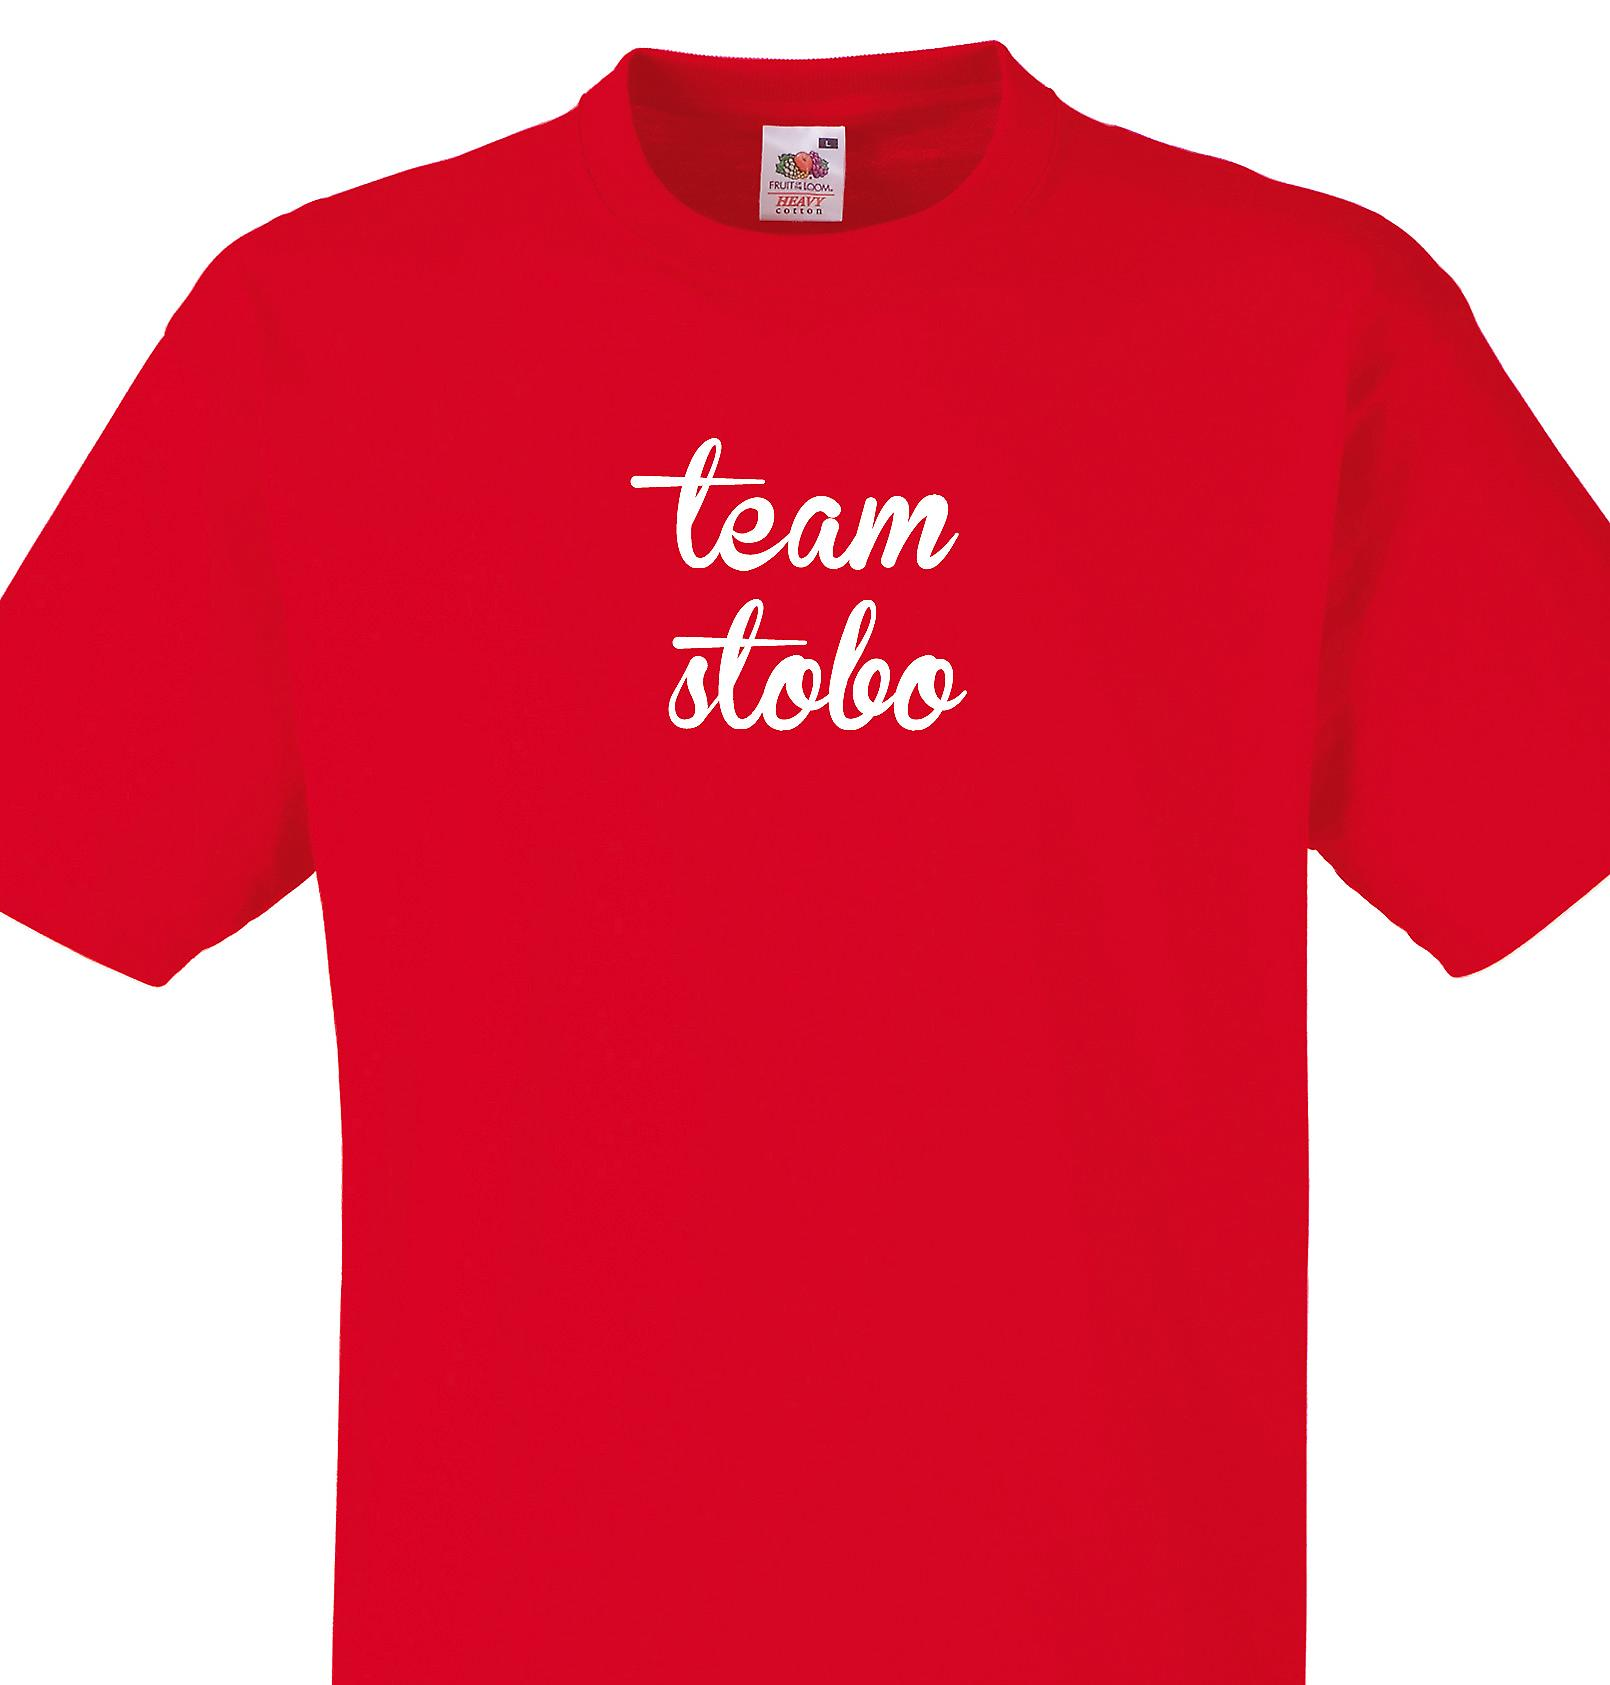 Team Stobo Red T shirt